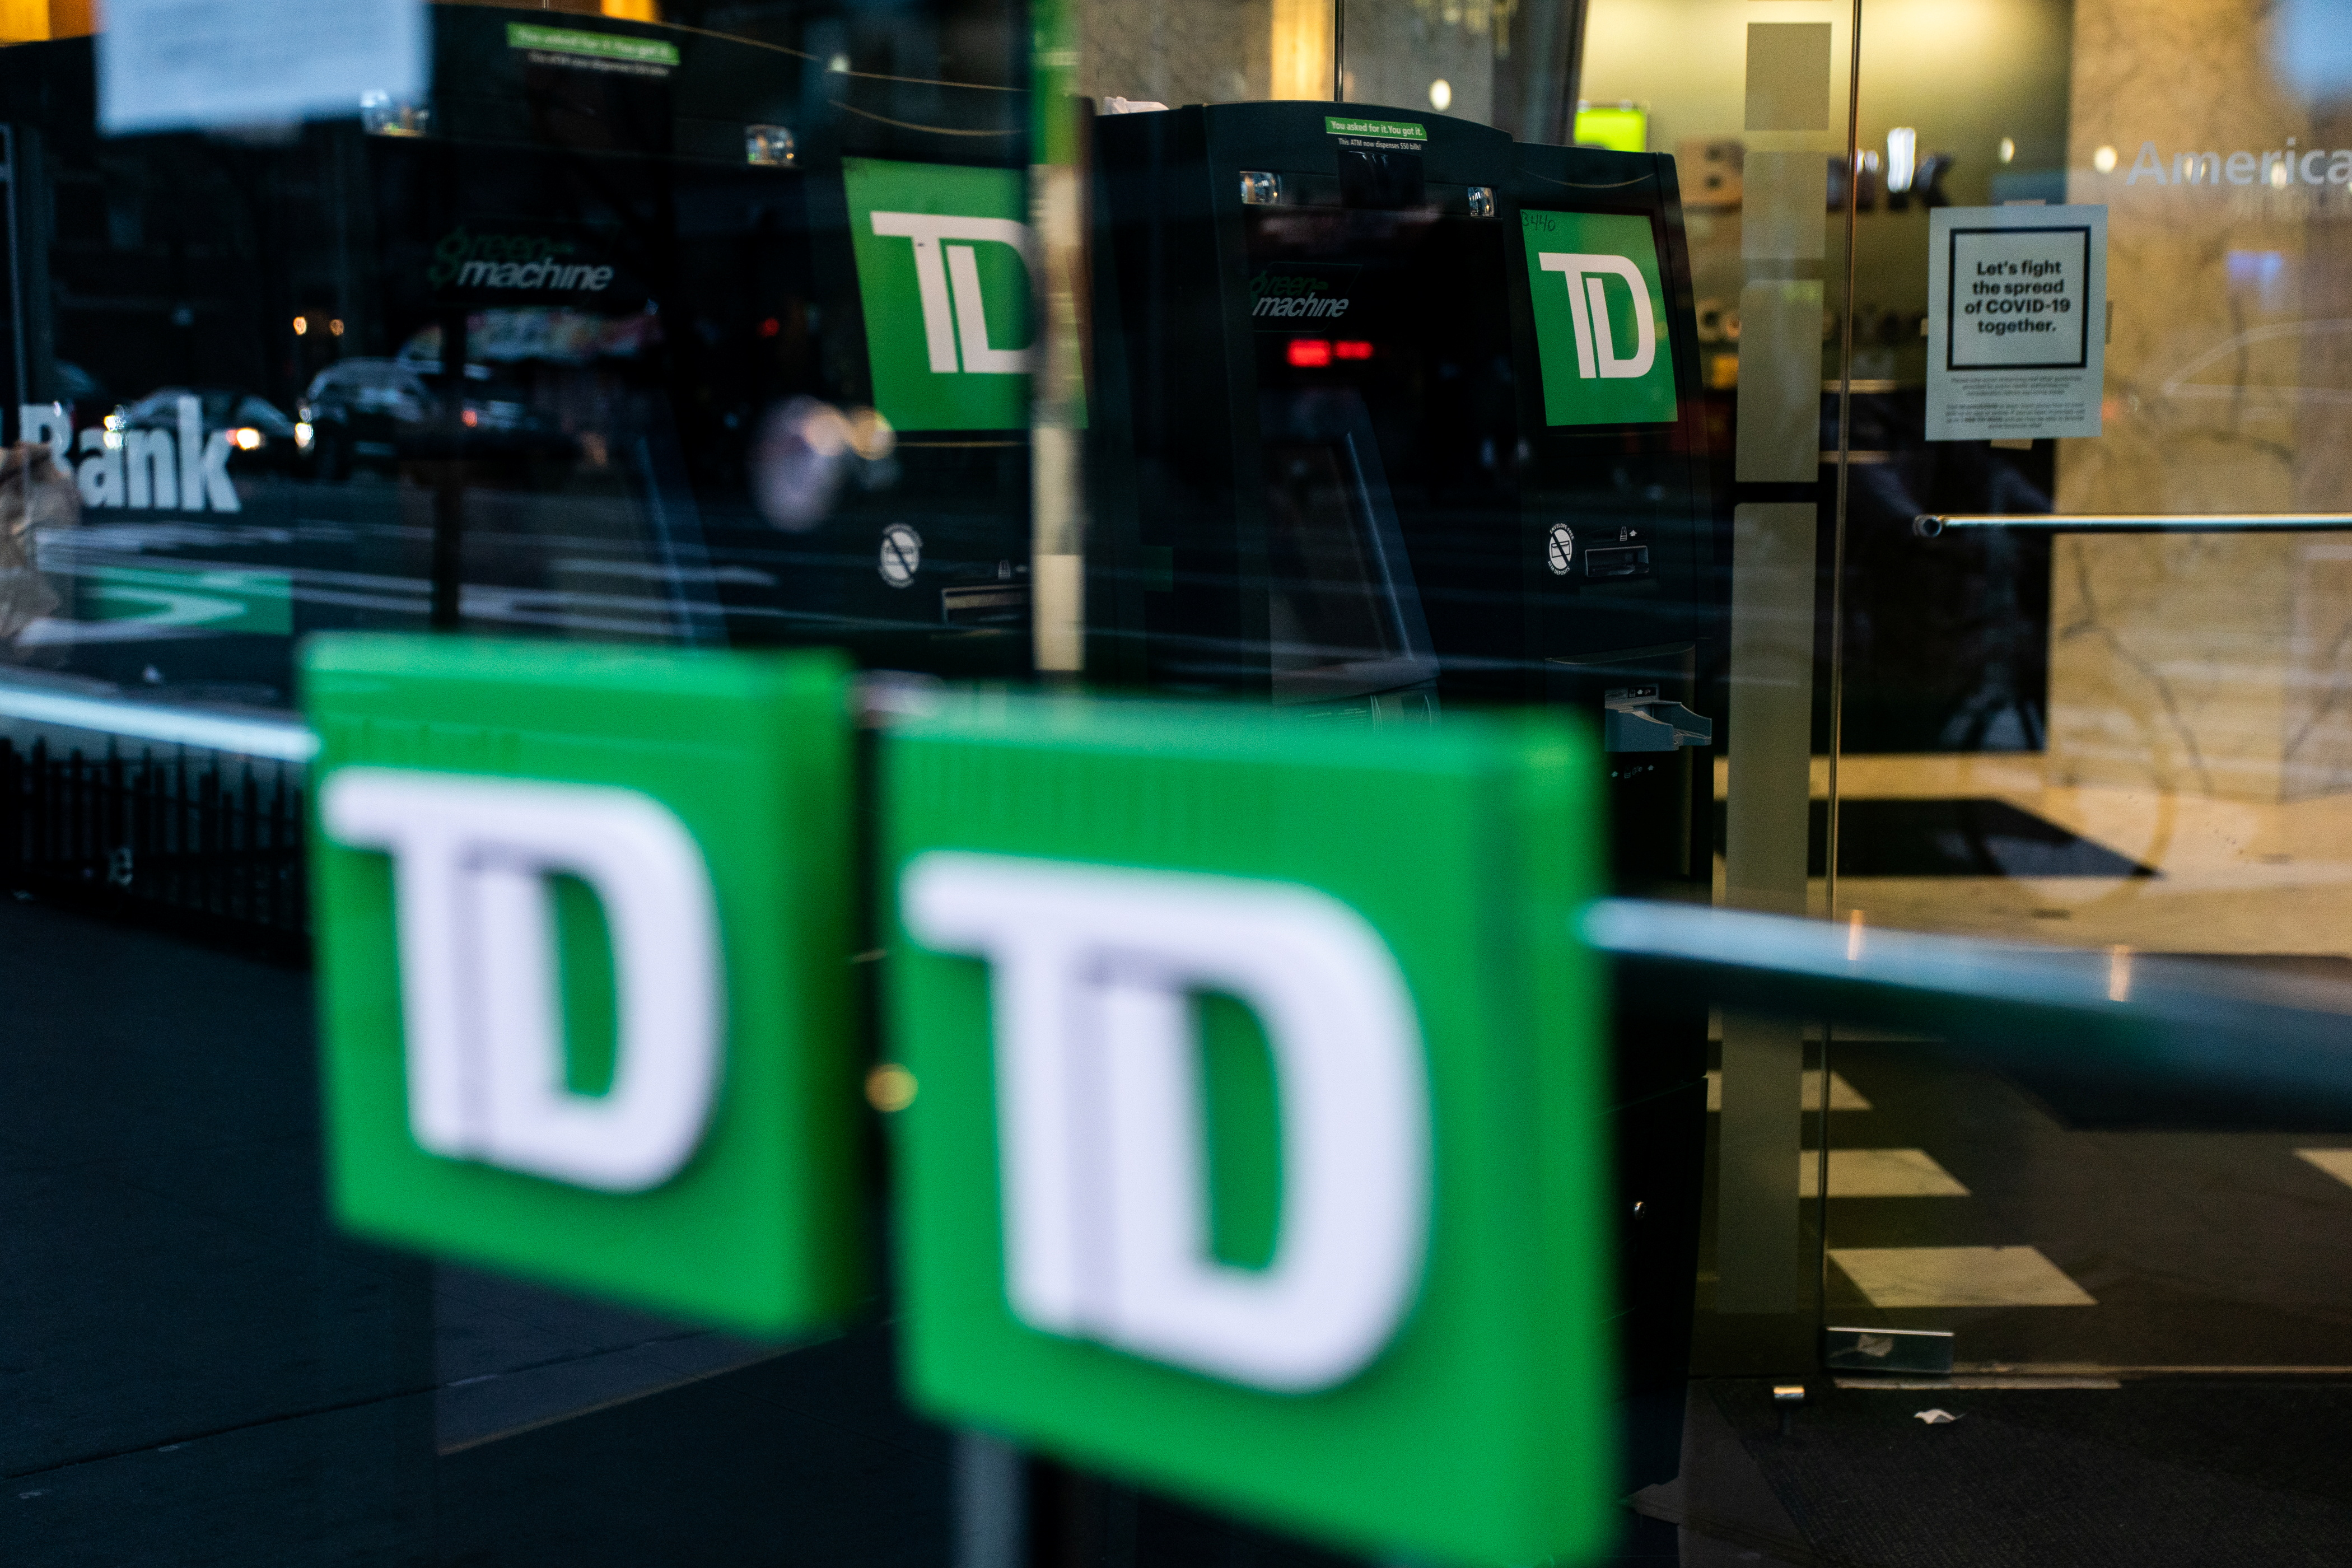 TD bank ATM machines are seen in New York City, U.S., March 17, 2020. REUTERS/Jeenah Moon/File Photo